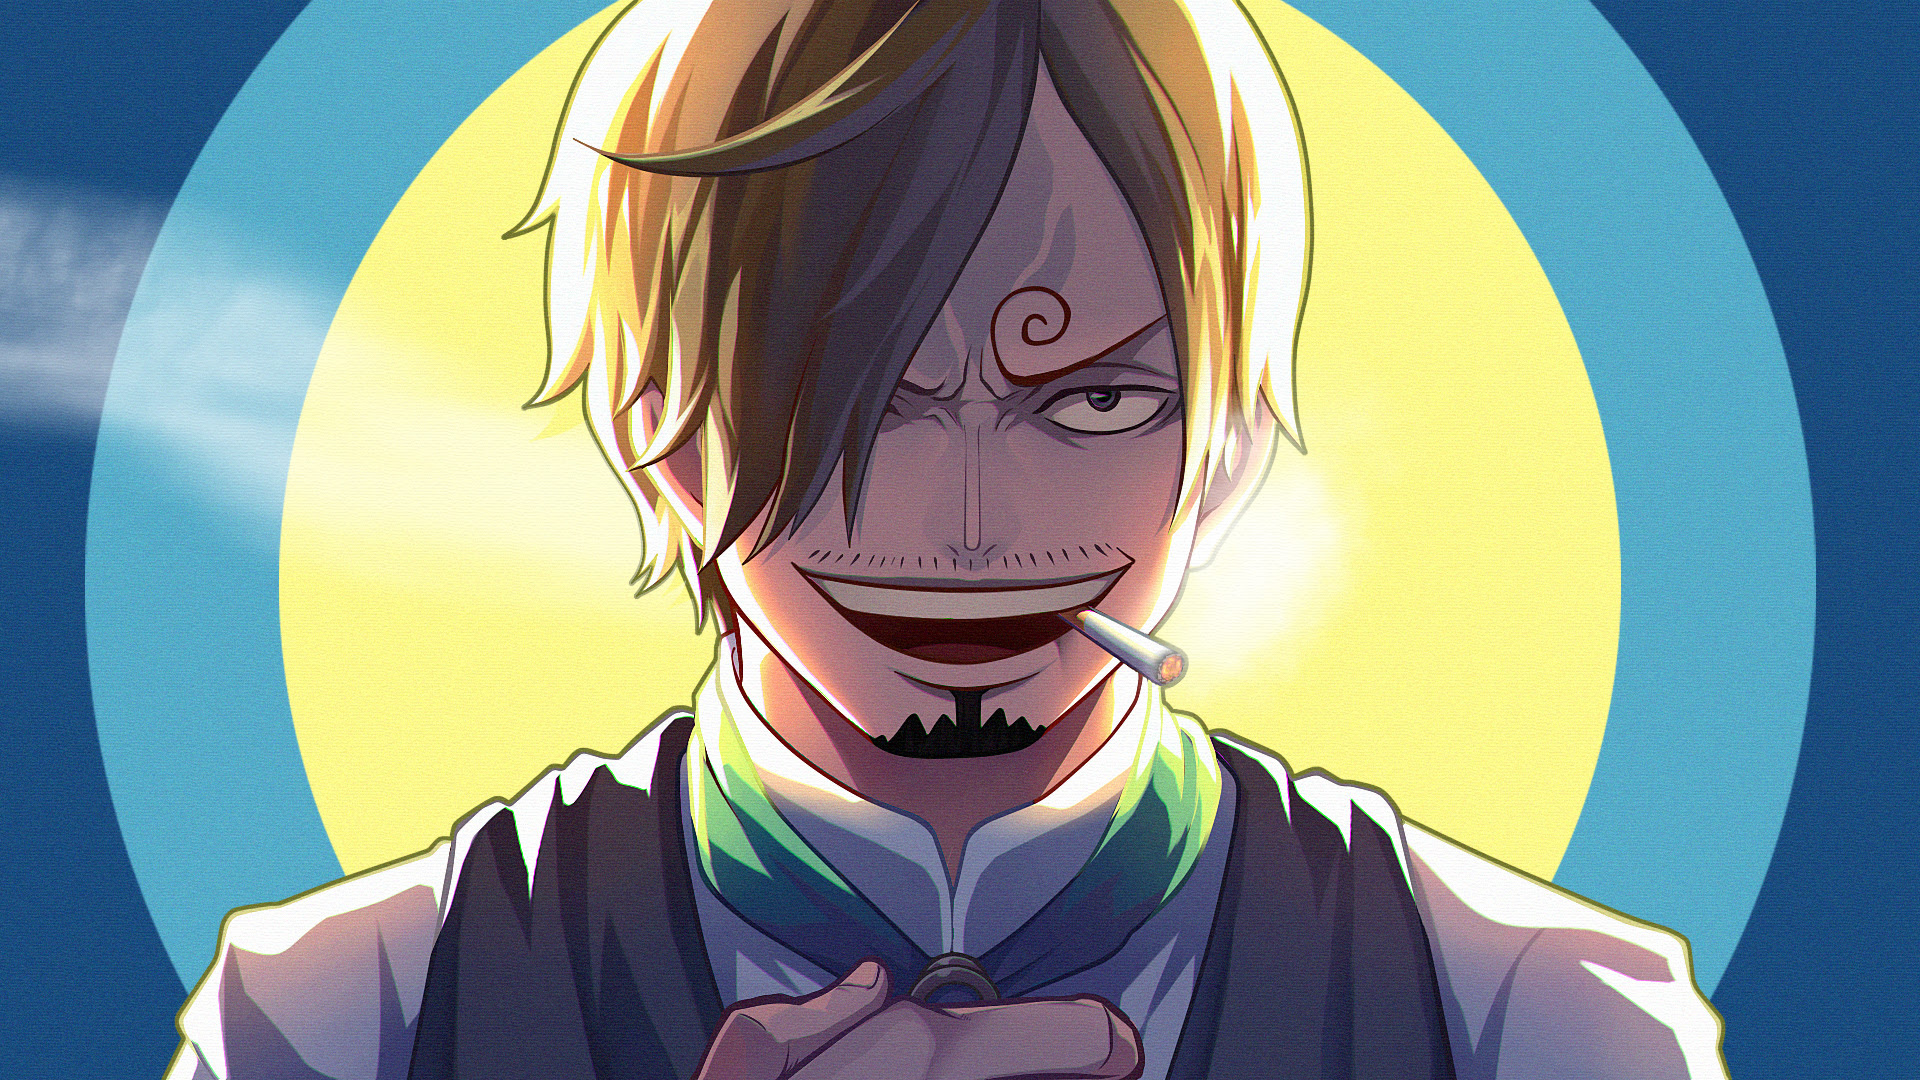 Wallpaper Sanji One Piece Hd Gambarku